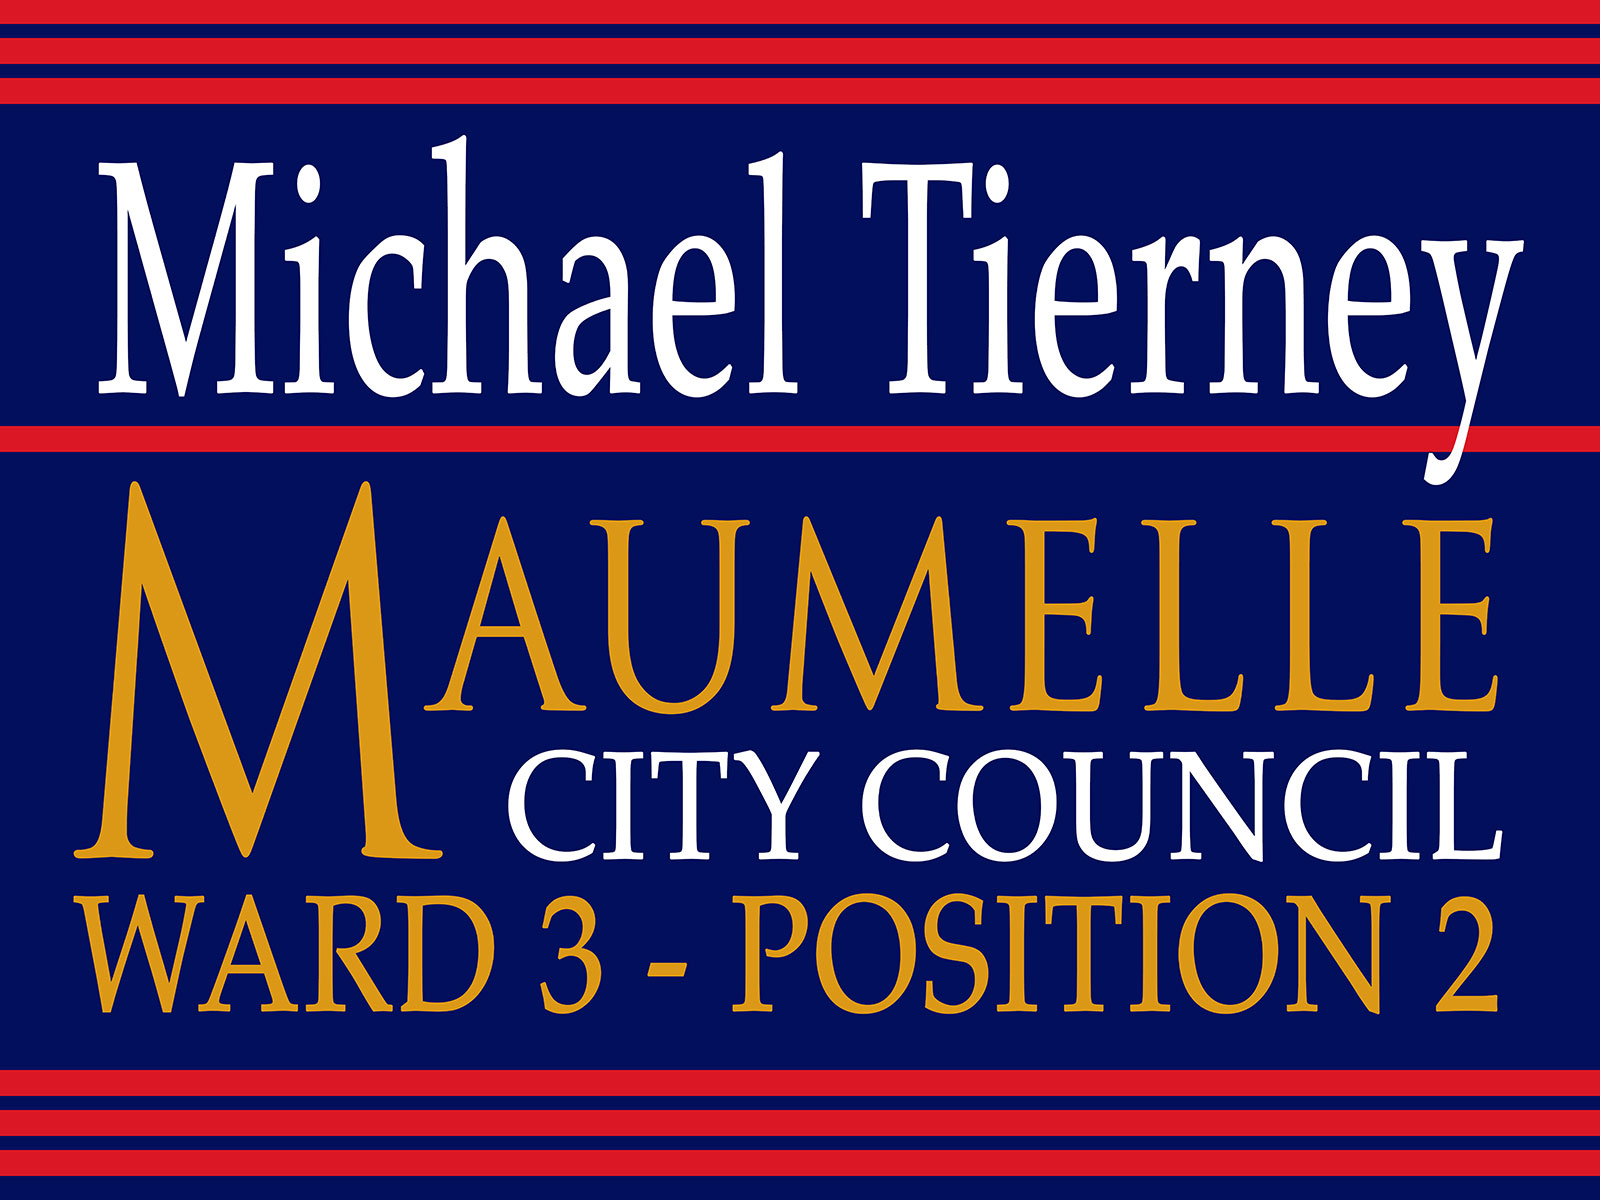 Michael Tierney for Maumelle City Council